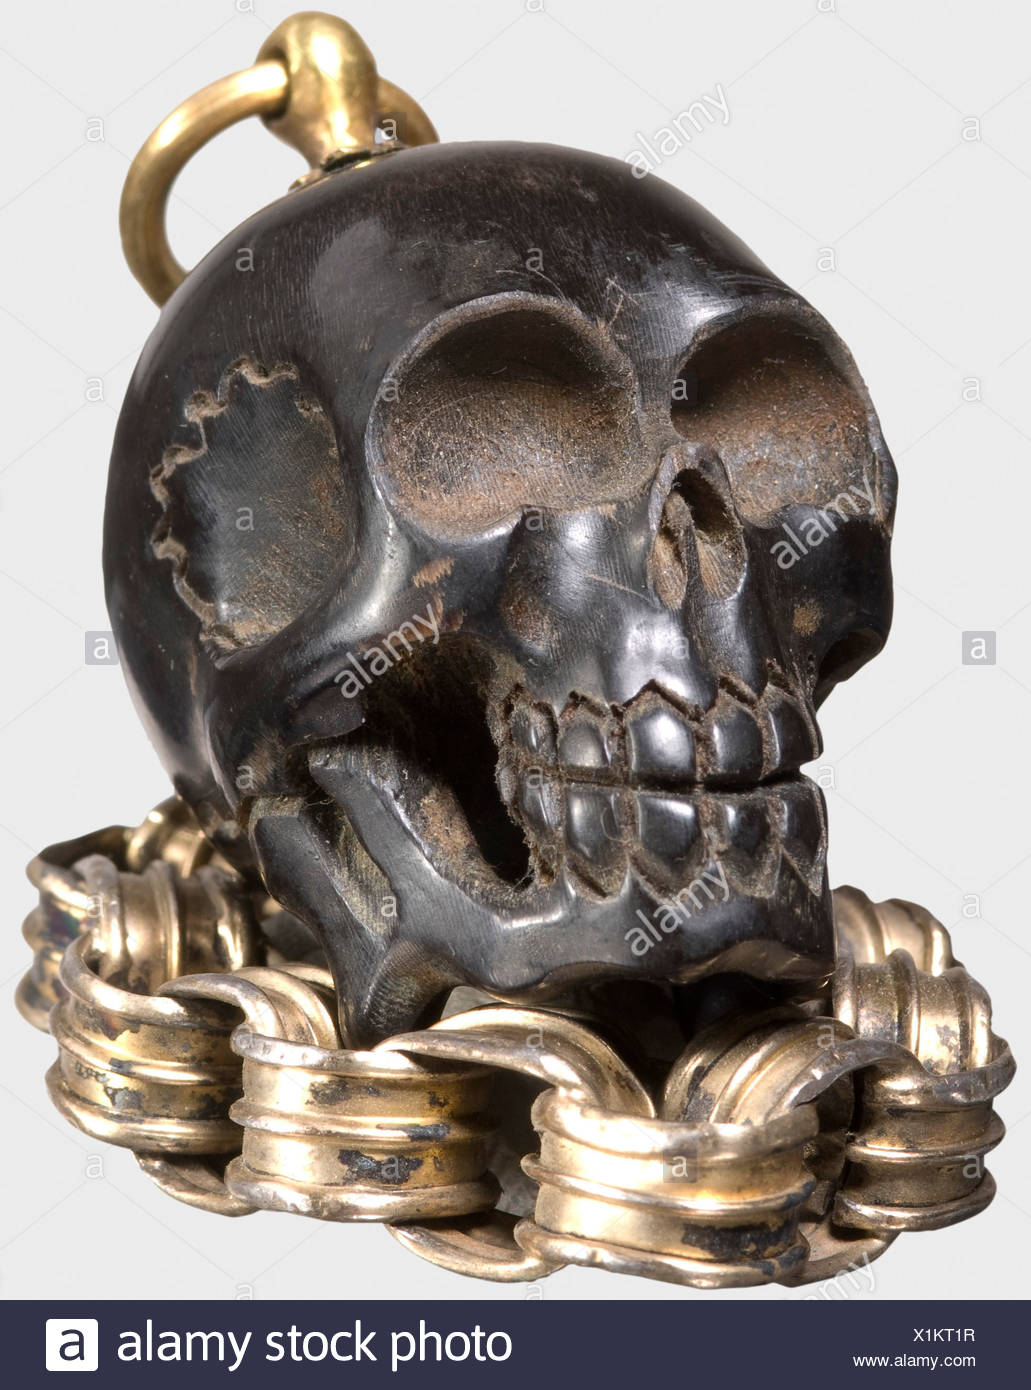 A German miniature memento-mori skull, 17th century A small, delicately carved skull of dark horn. There is a fire-gilded brass suspension ring mounted at the top of the skull, attached to a contoured, gilt silver belcher chain. Height without ring 3.5 cm. Length of the chain 14 cm. historic, historical,, 17th century, handicrafts, handcraft, craft, object, objects, stills, clipping, clippings, cut out, cut-out, cut-outs, jewellery, jewelry, noble, precious, Stock Photo